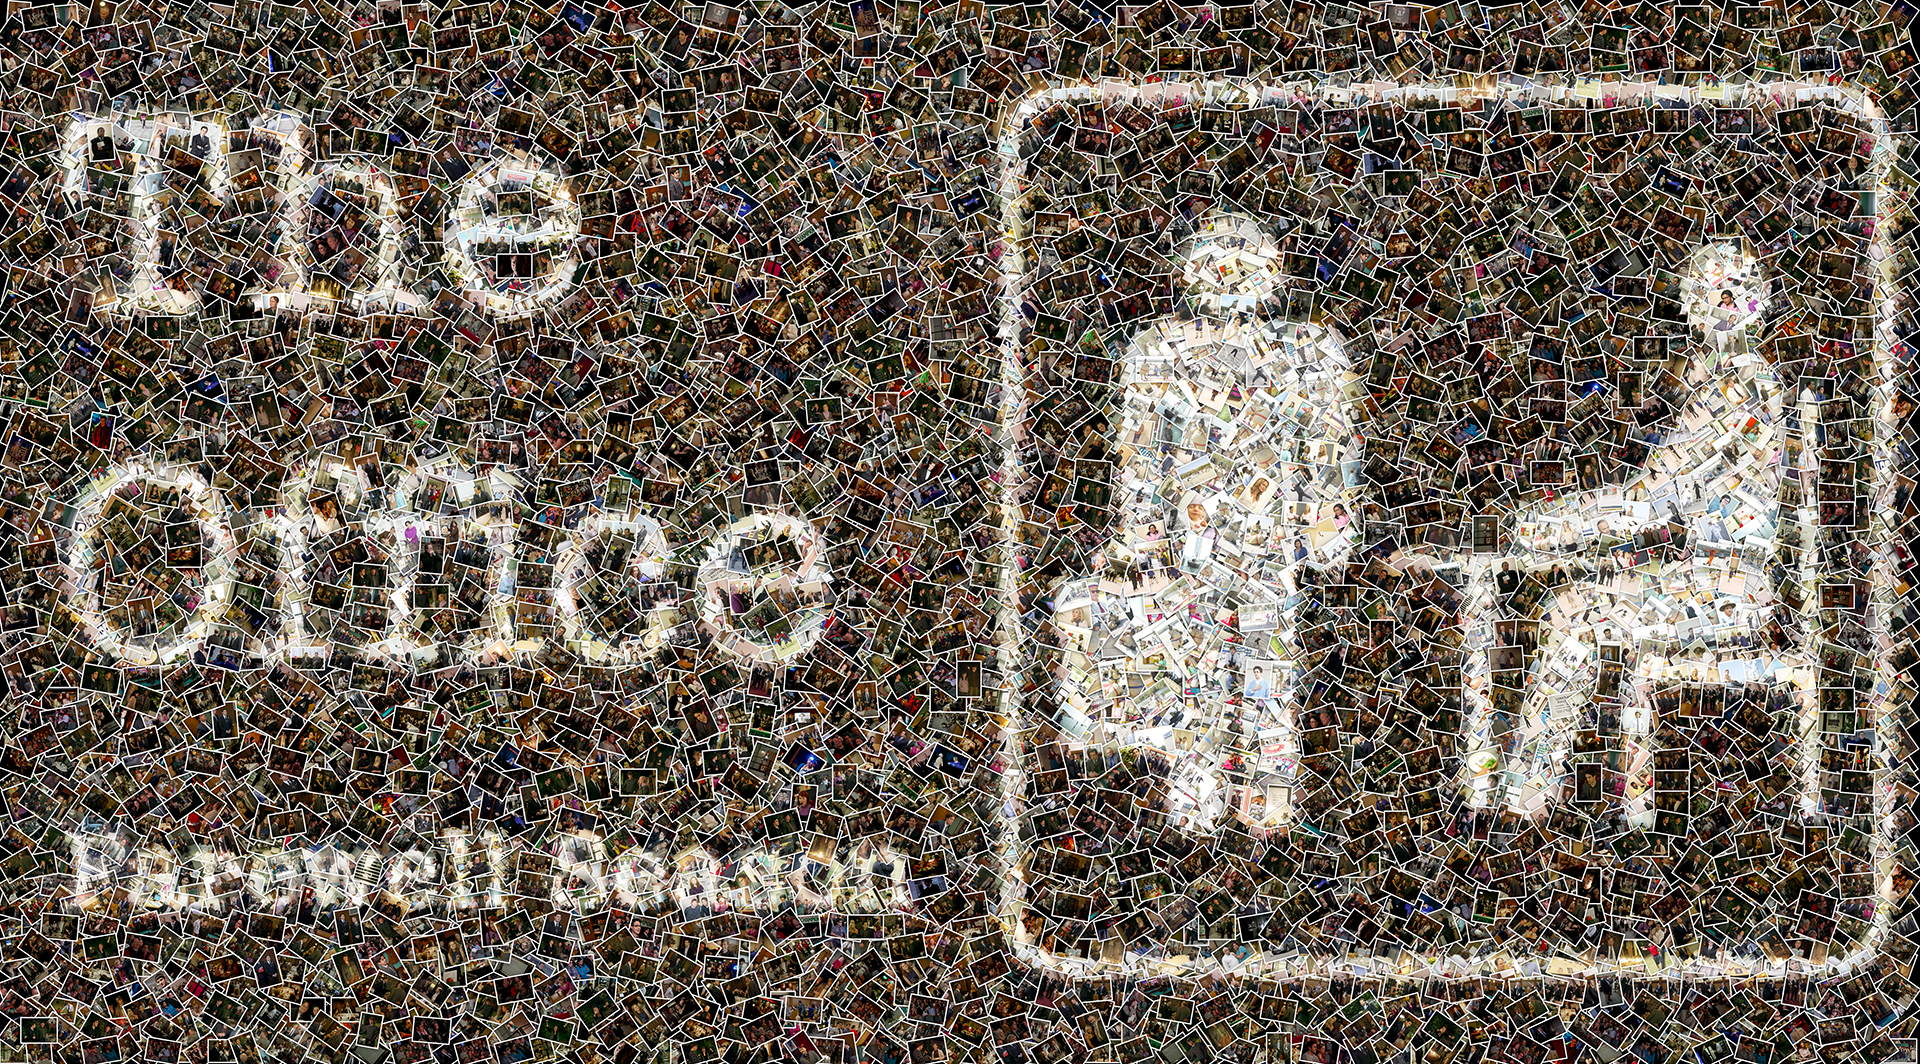 photo mosaic over 4600 stills from NBC's The Office were used to create this farewell season mural